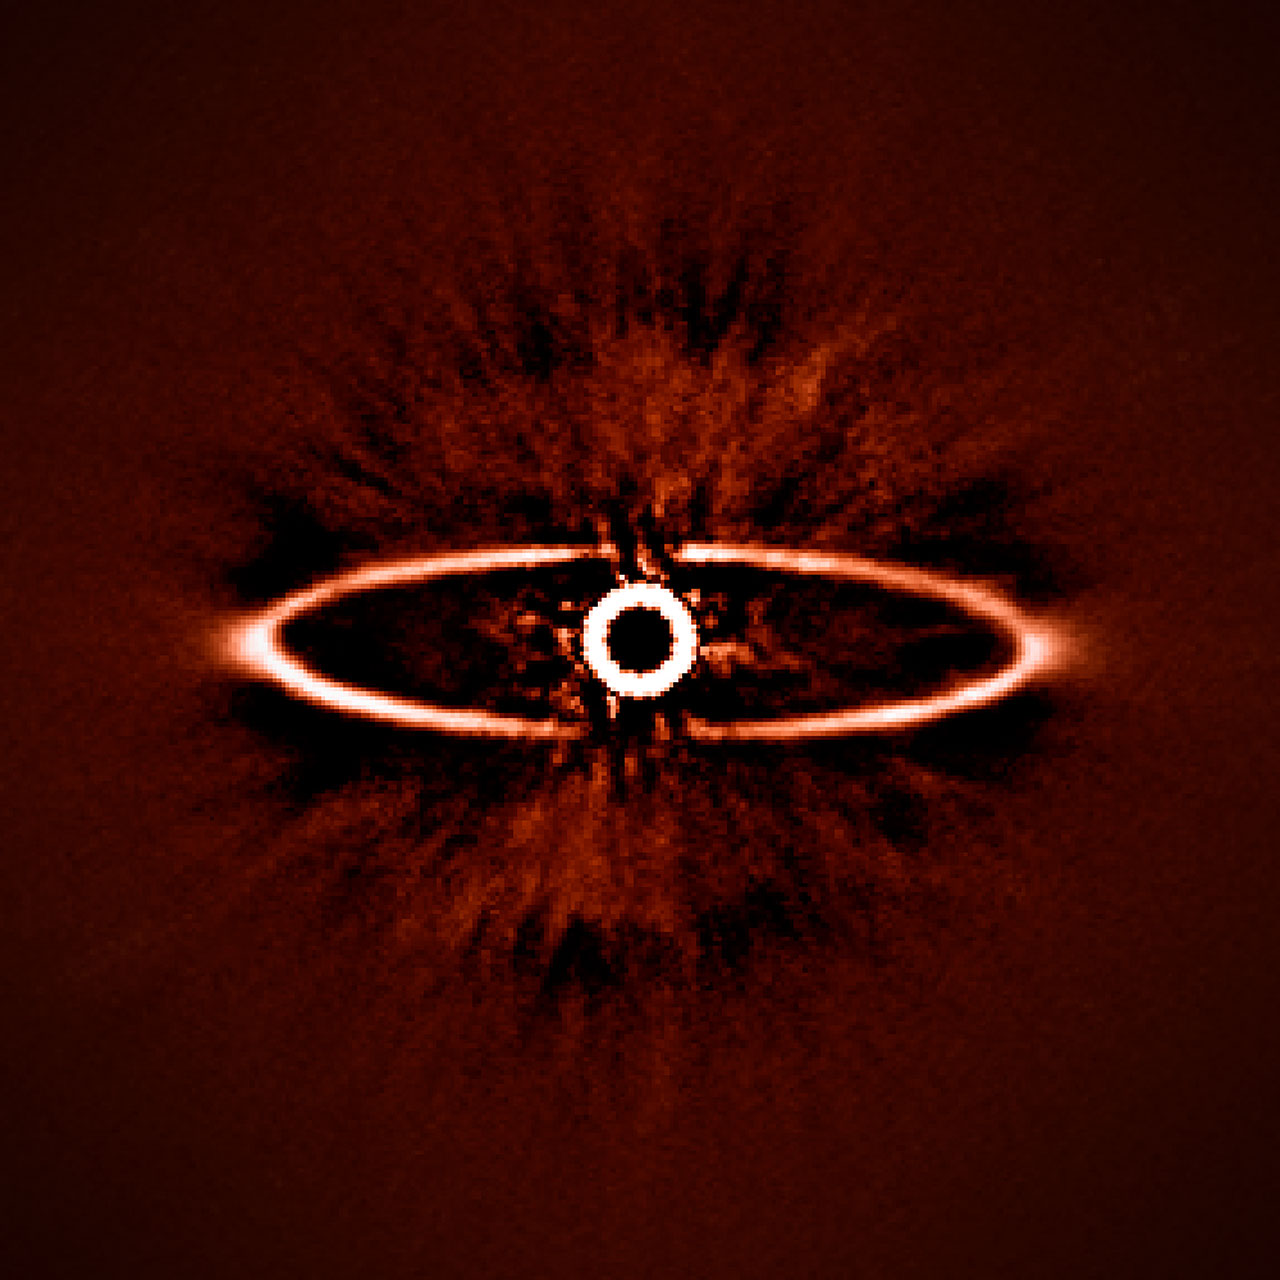 Alien Planet-Hunting Telescope Tool Snaps 1st Amazing Images (Video, Photos)